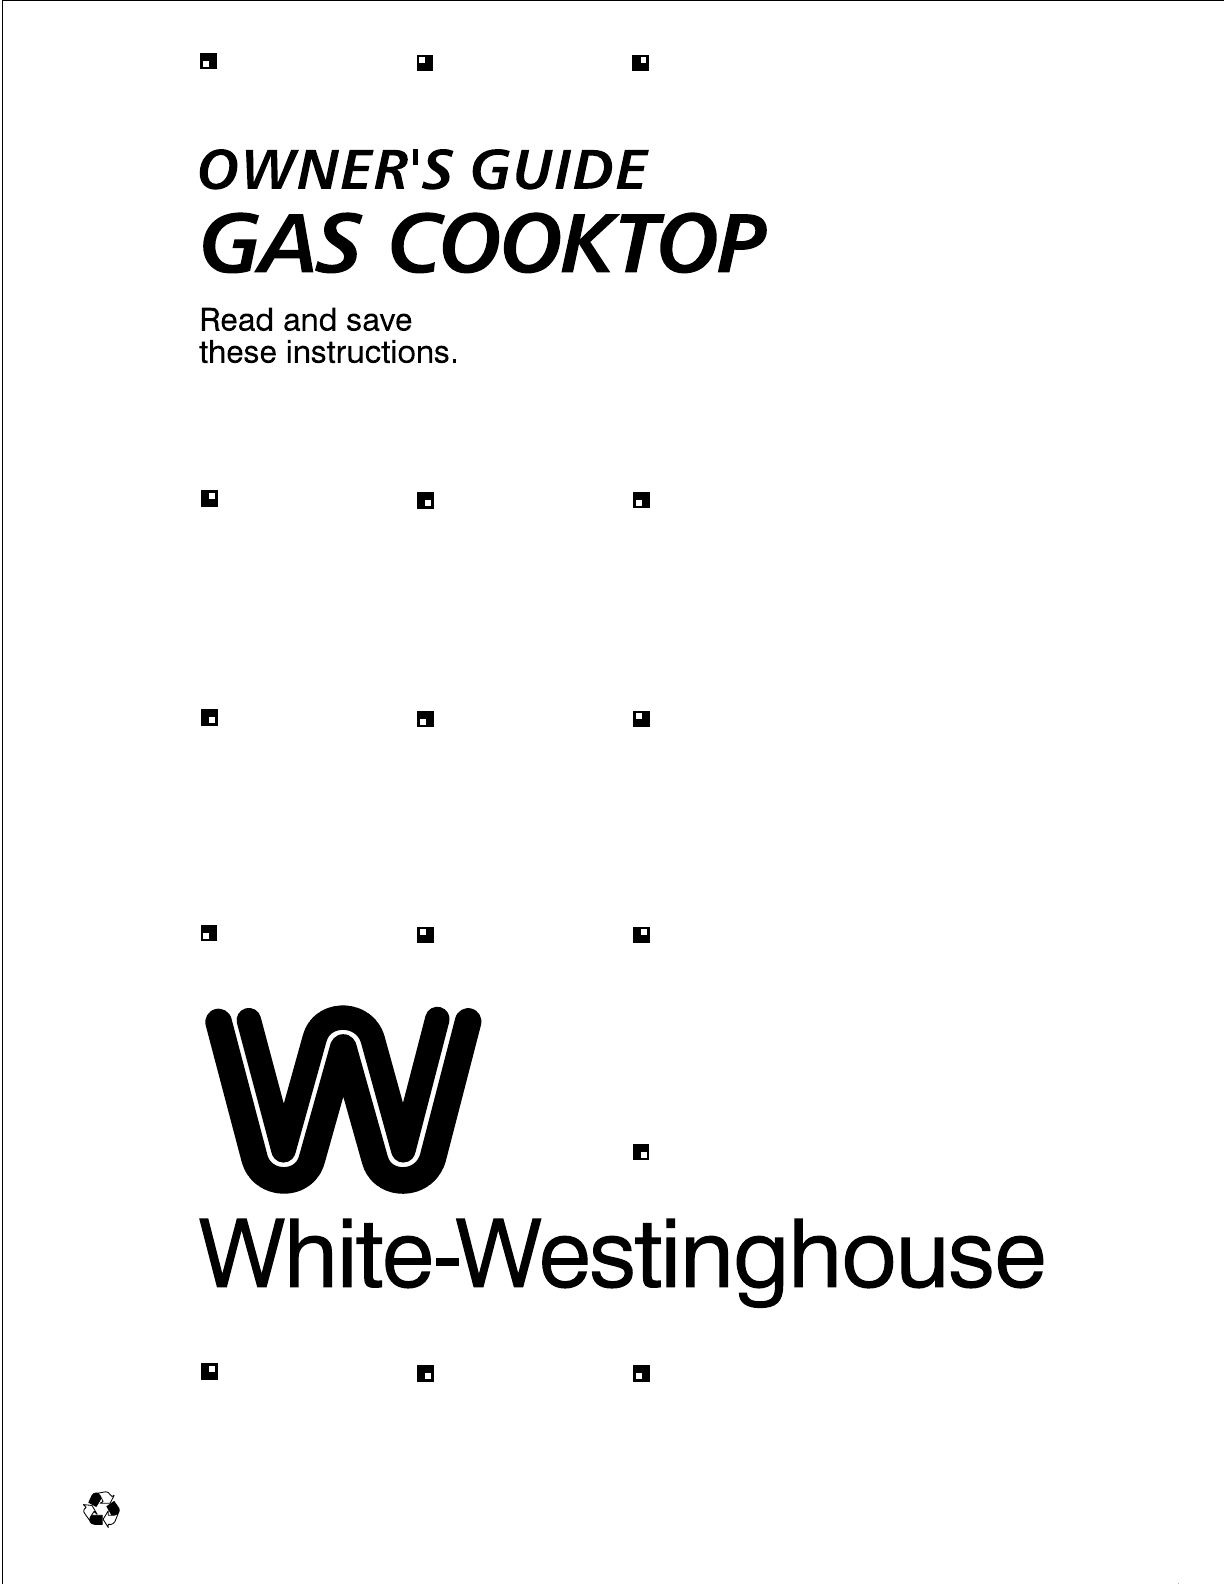 White-Westinghouse Cooktop 318132200 User Guide